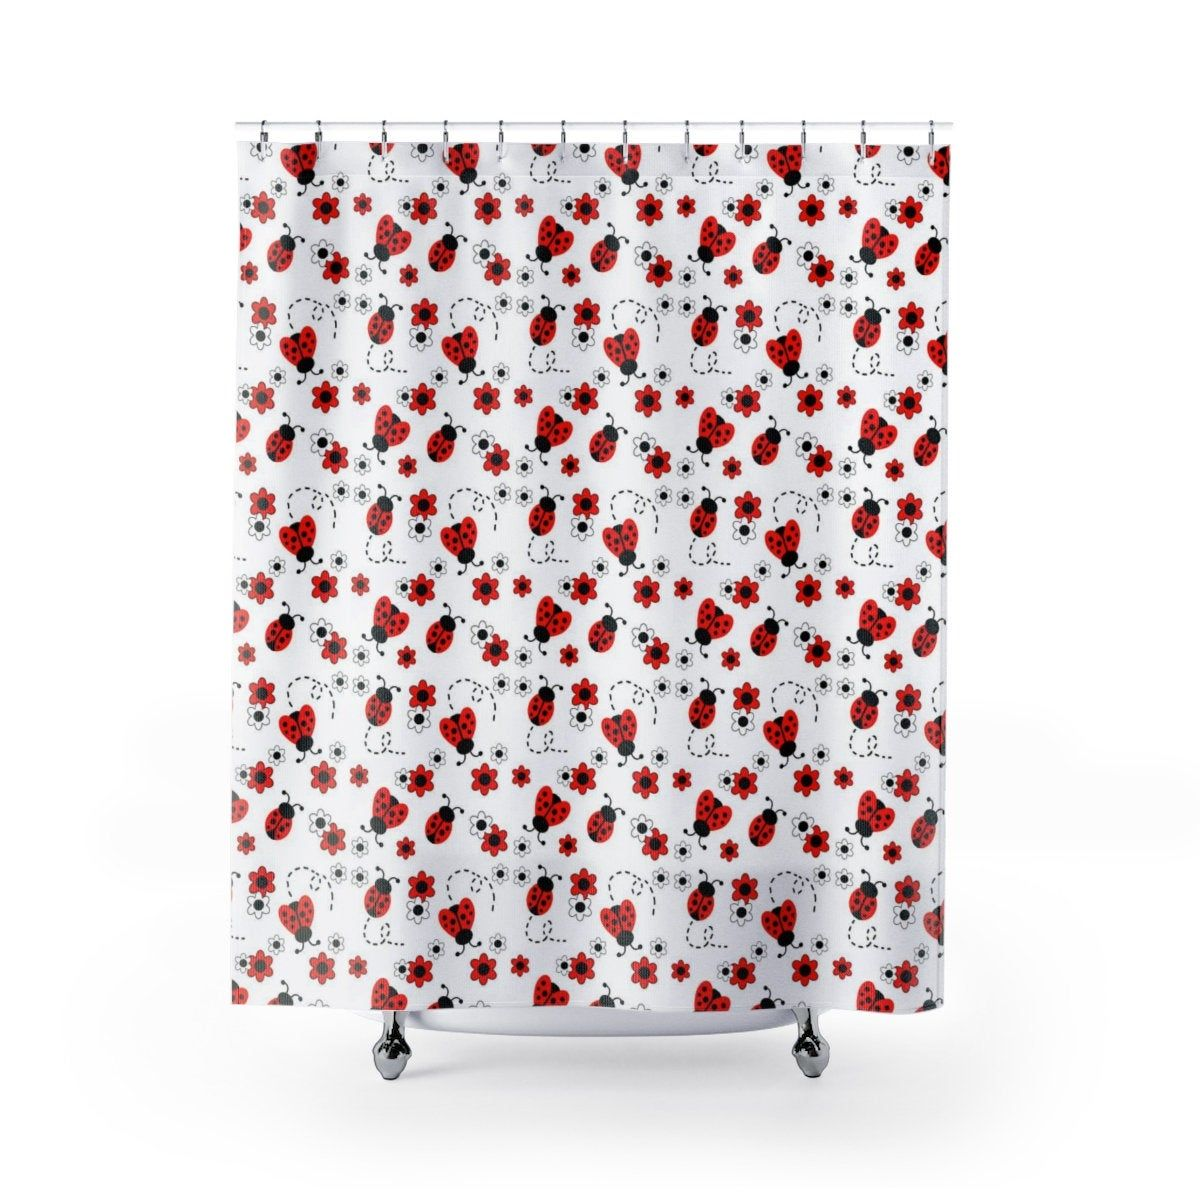 Ladybug Shower Curtains Girls Bathroom Floral Bath Room Decor Girls Red Lady Bug Ladybird Shower Curtain Kids Bathroom Bug Decorations Kids Shower Curtain Girls Room Decor Girls Bathroom